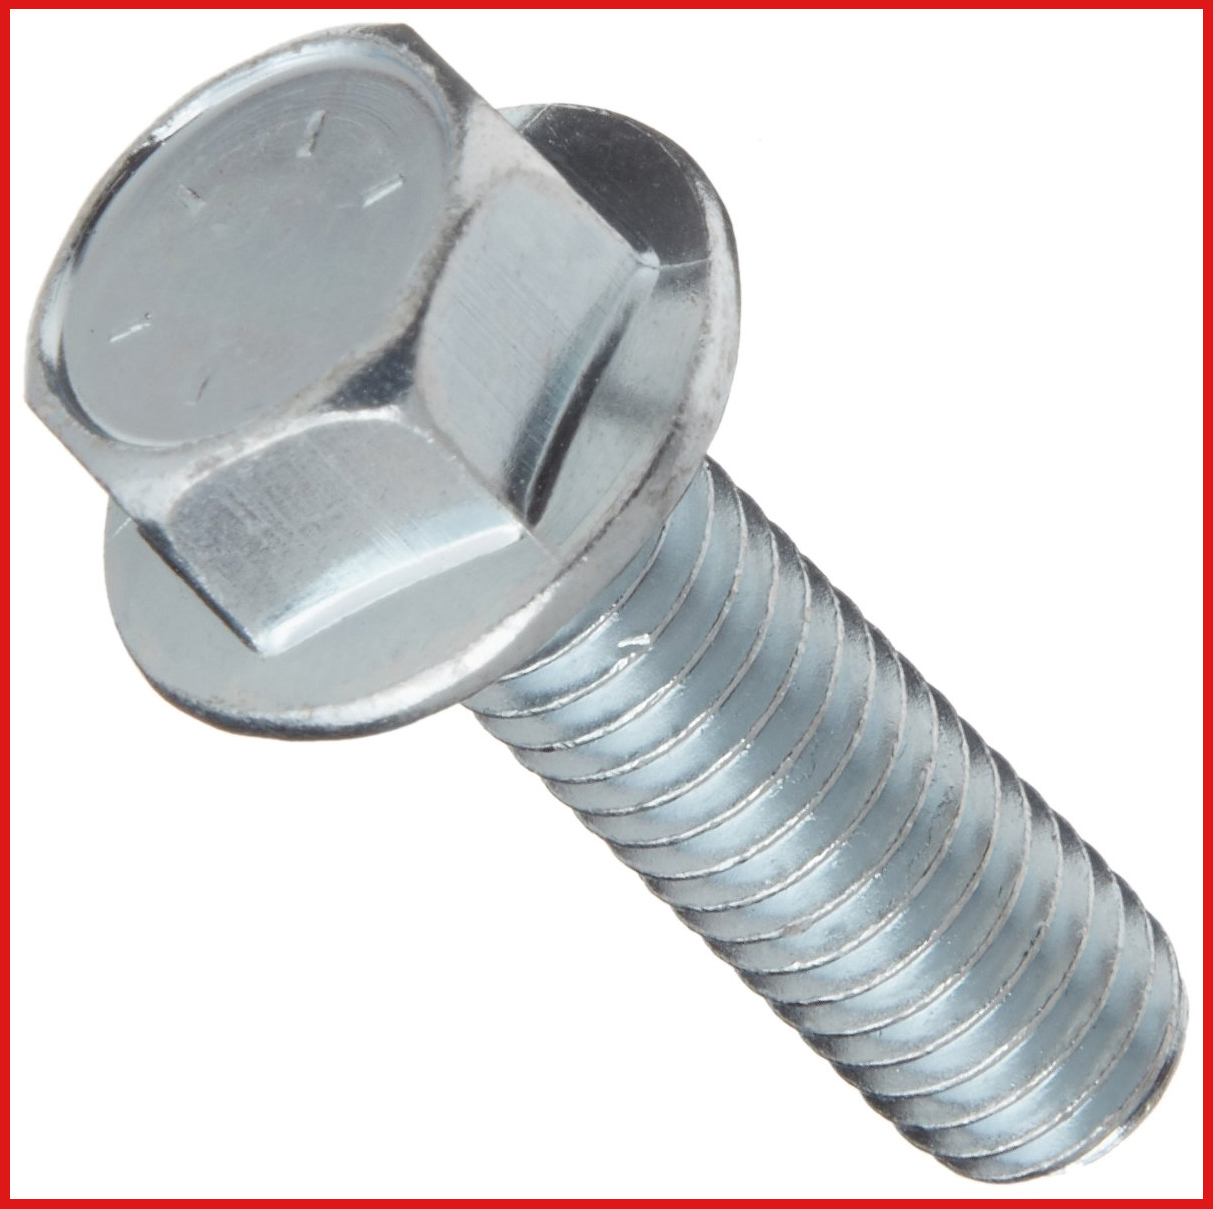 nuts and bolts Nuts and bolts symposiums berckemeyer consulting group po box 6179 denver, co 80206 628-333-lead ph [email protected.